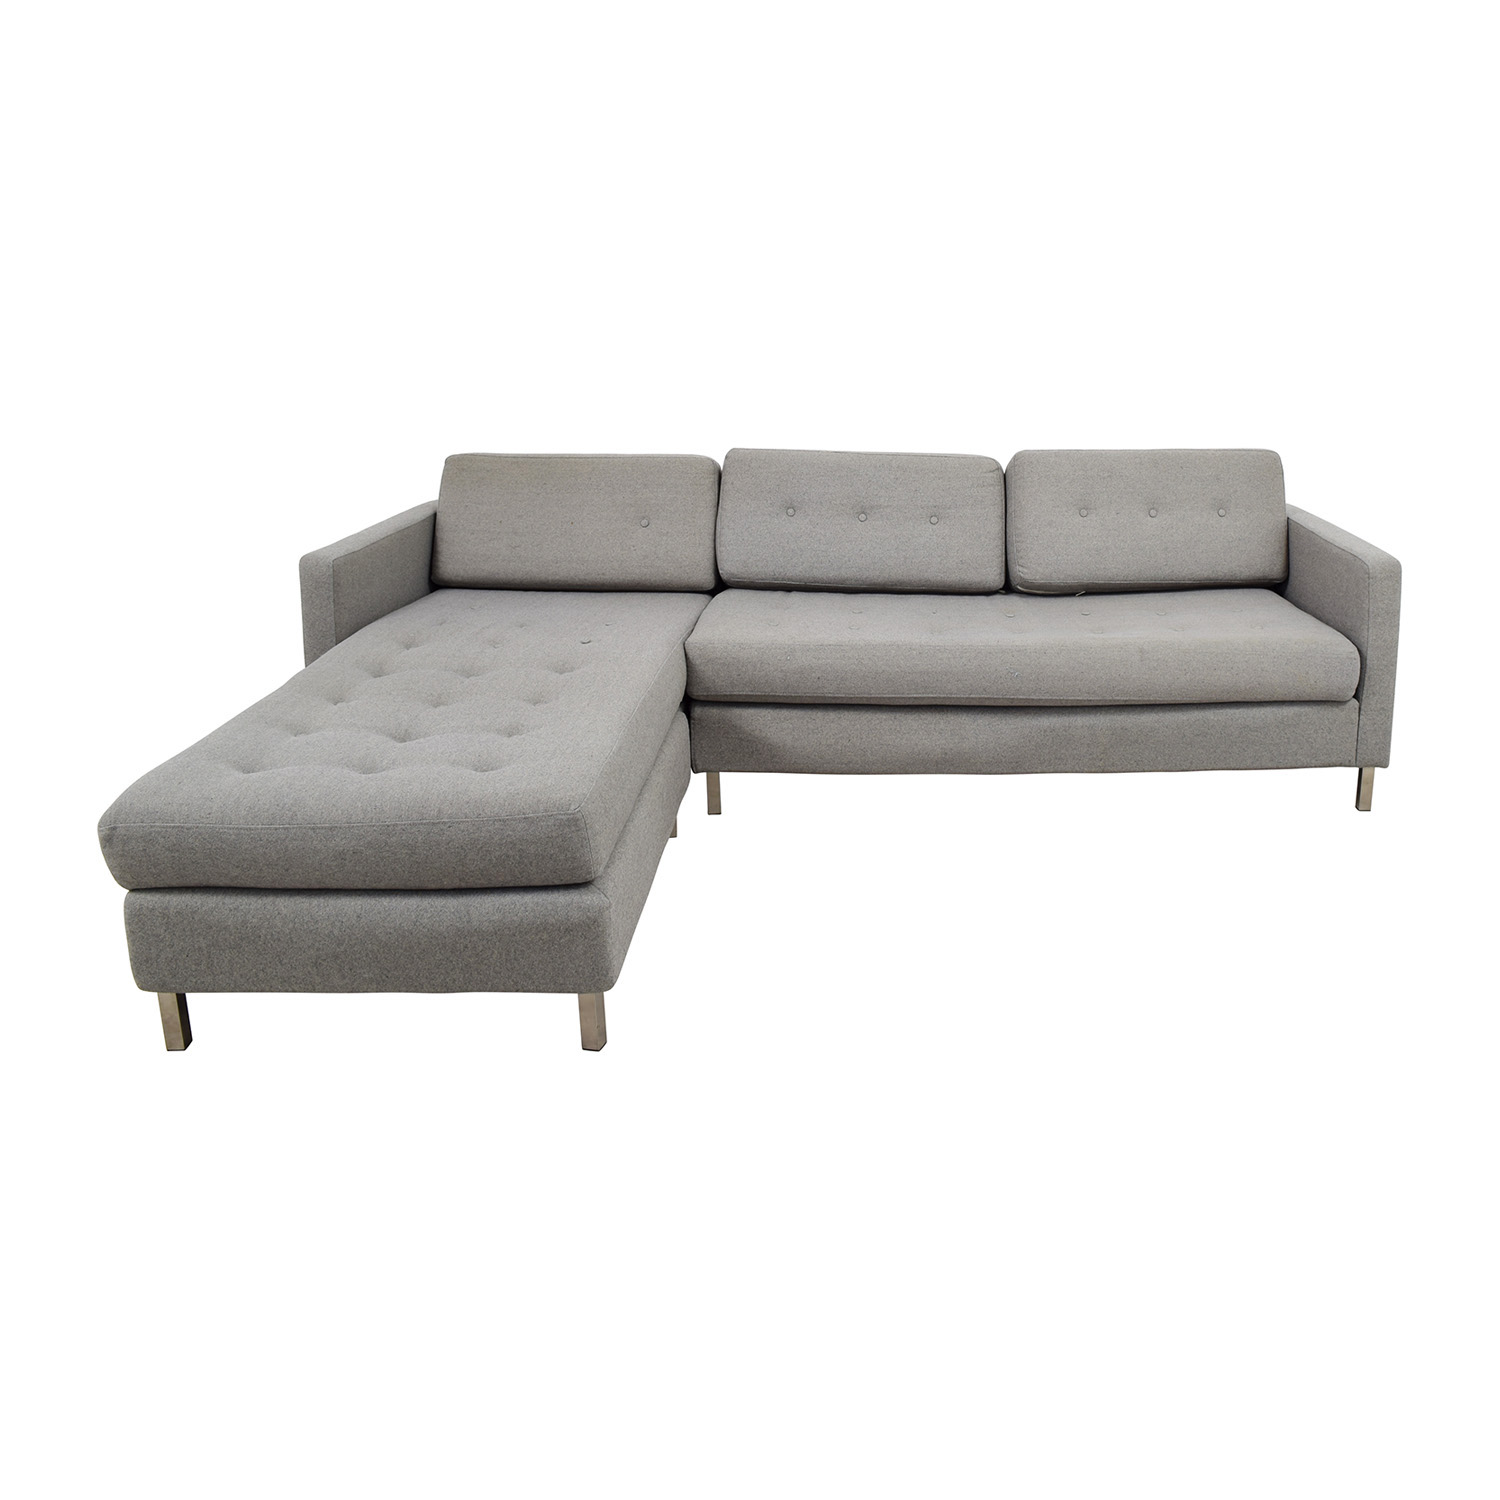 CB2 CB2 Grey Tufted Chaise Sectional nyc